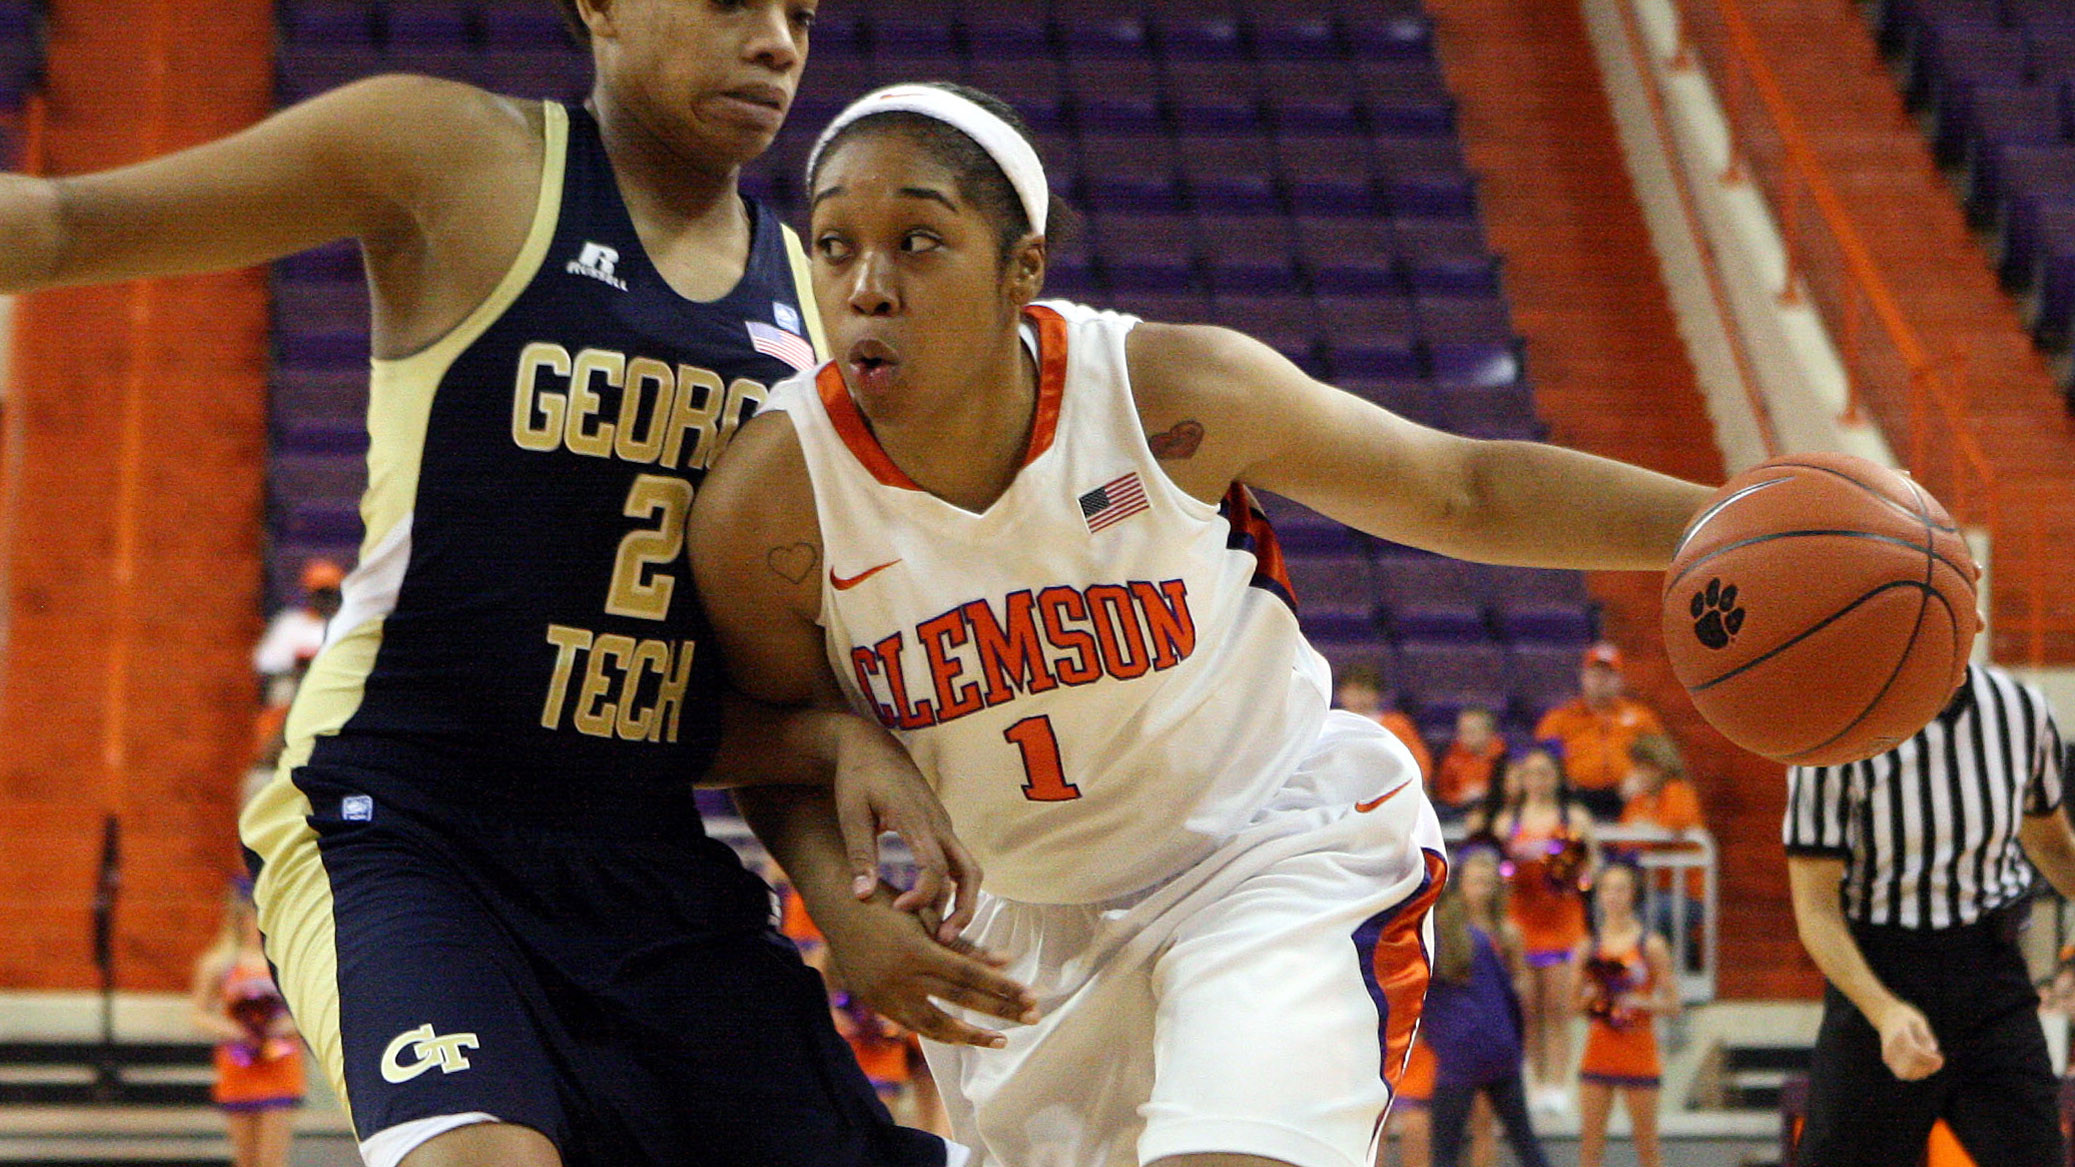 Lady Tigers to Play at No. 4 Duke Thursday